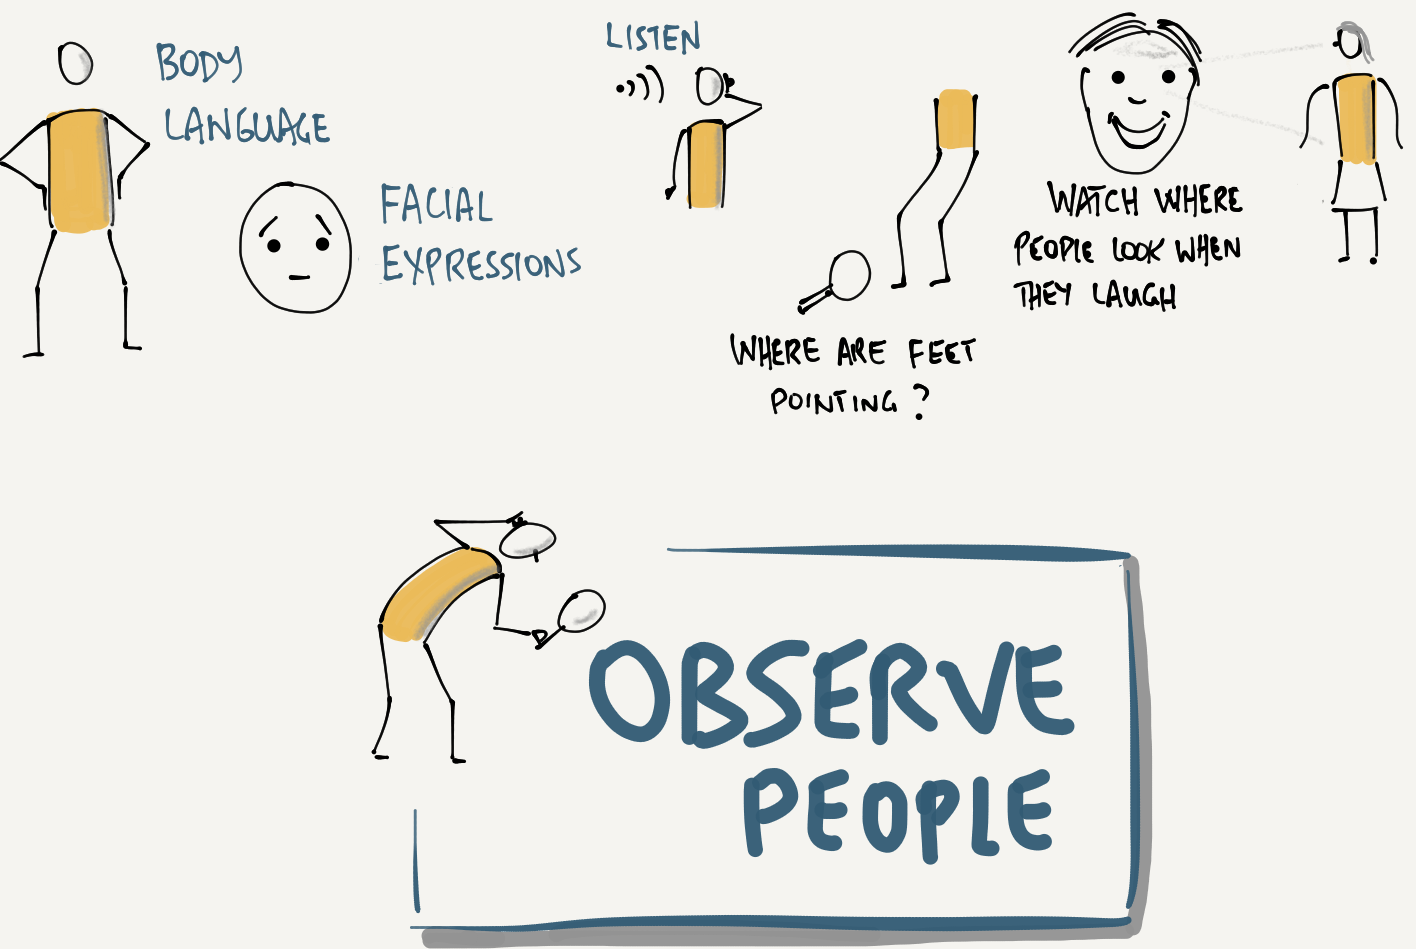 Doodle-art (bikablo styles) depiction of observing others